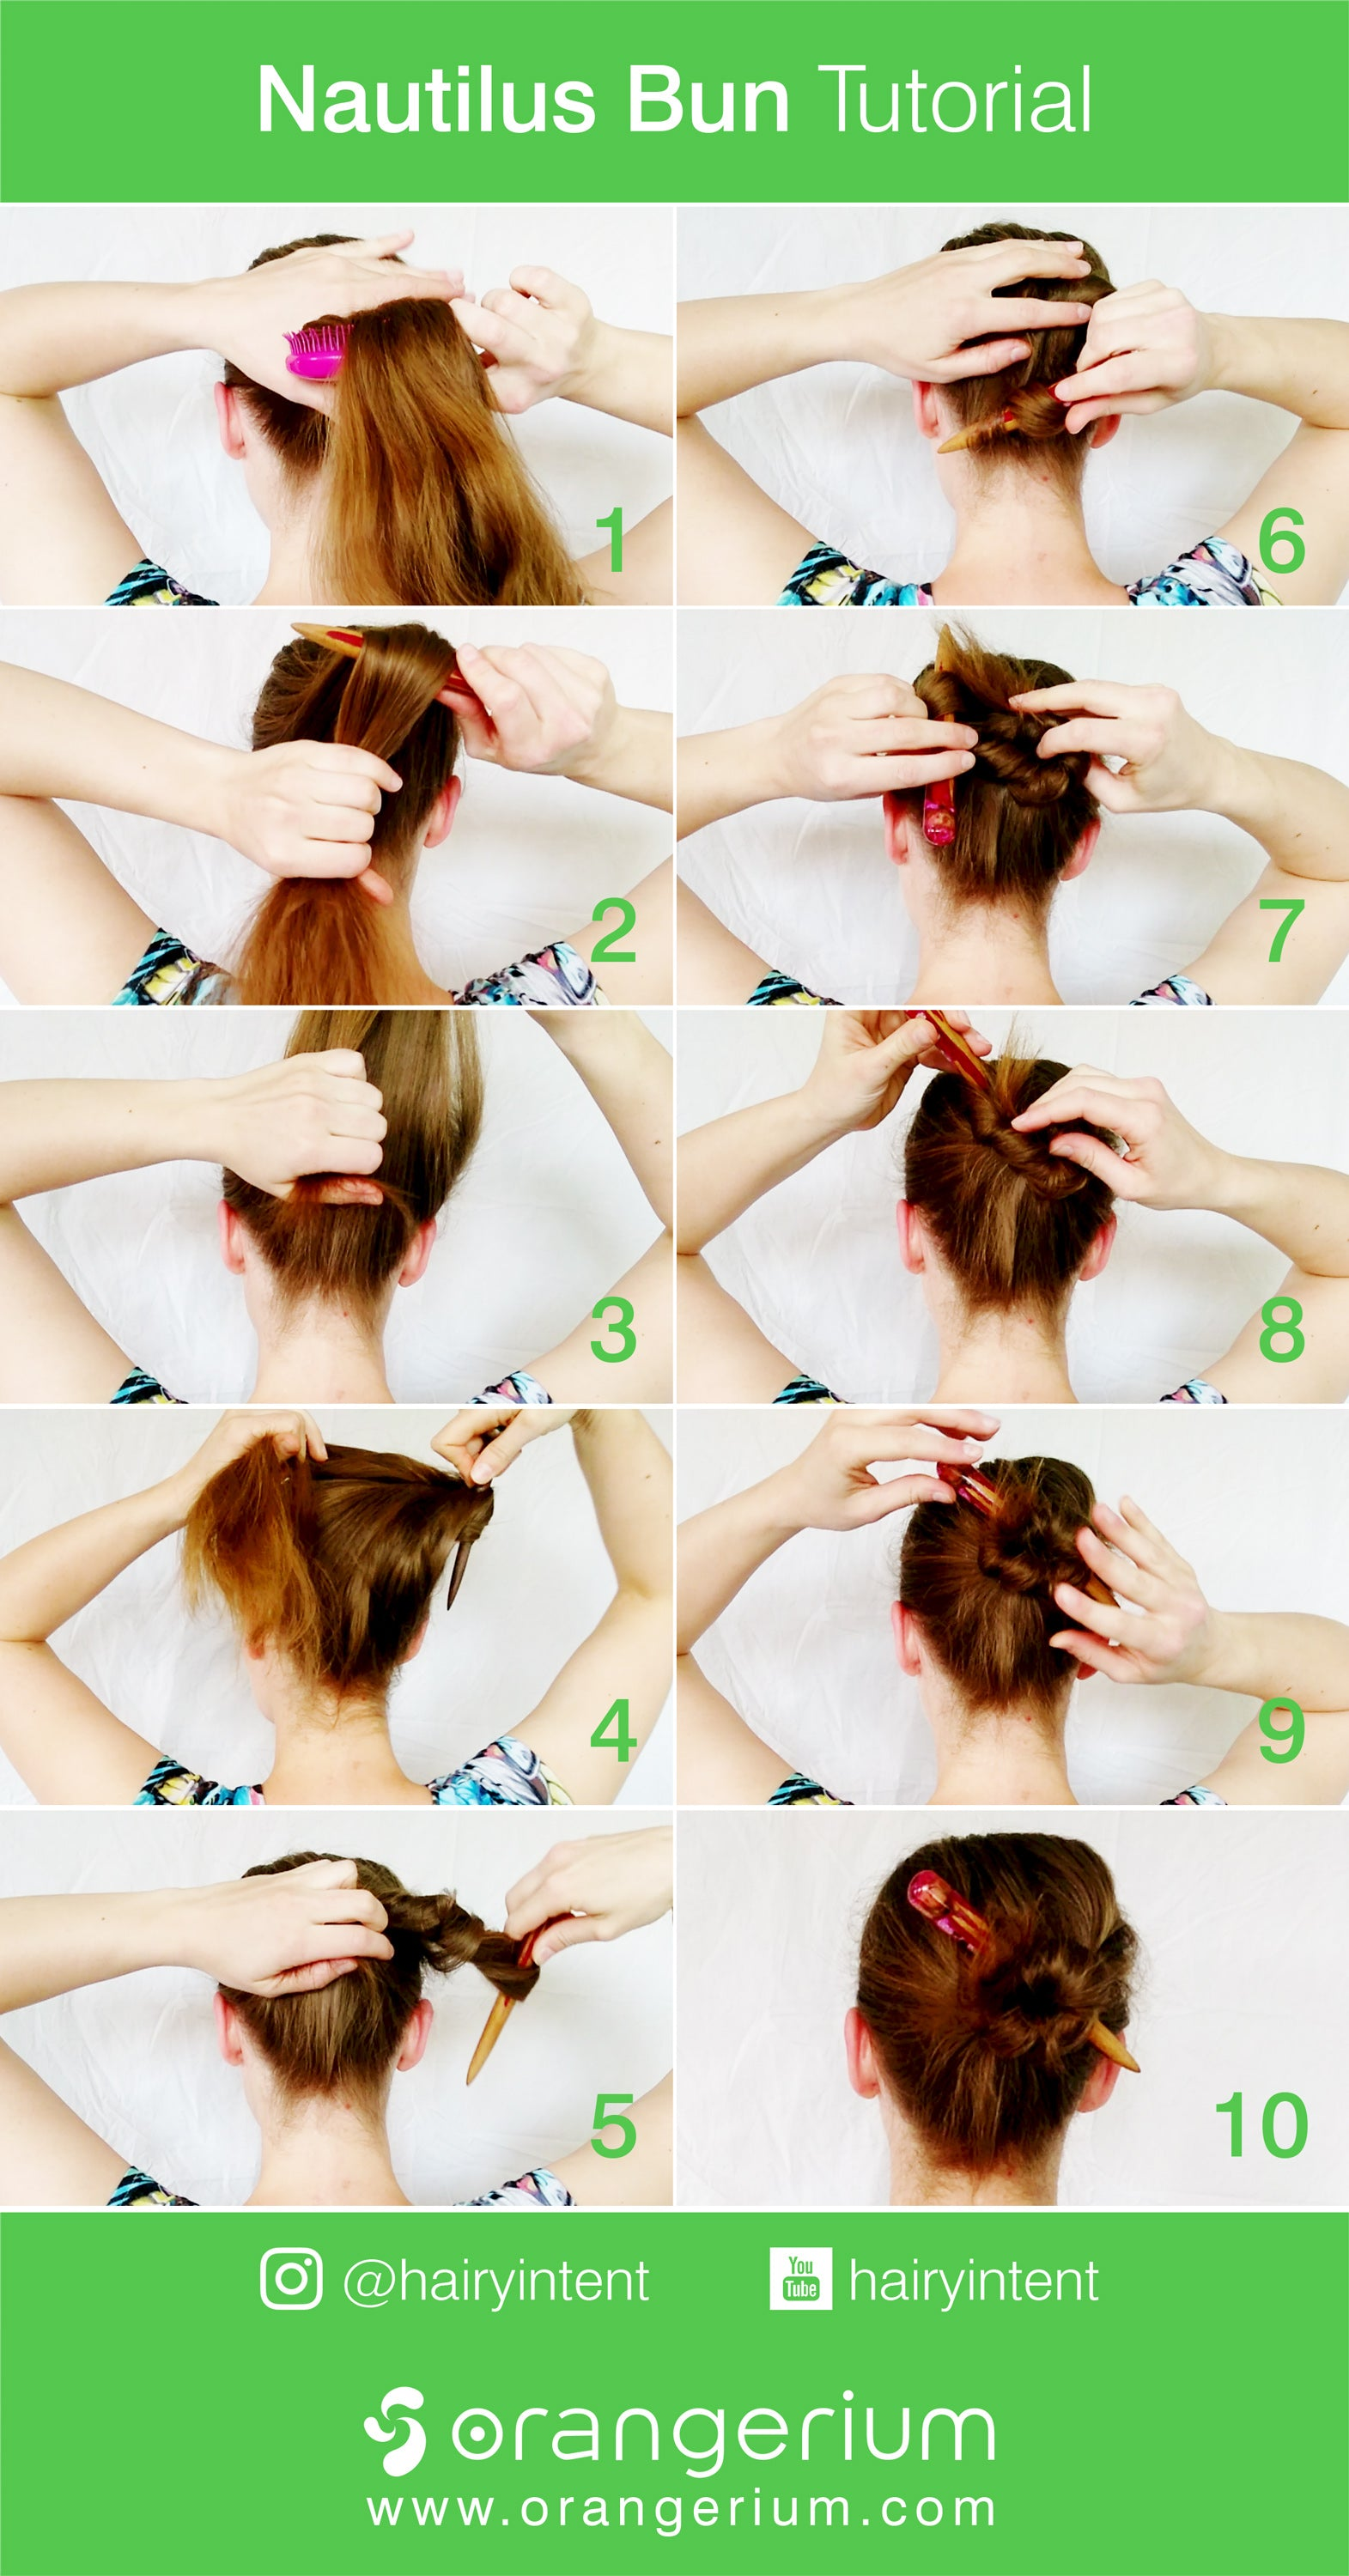 HAIRSTYLE TUTORIALS – Orangerium